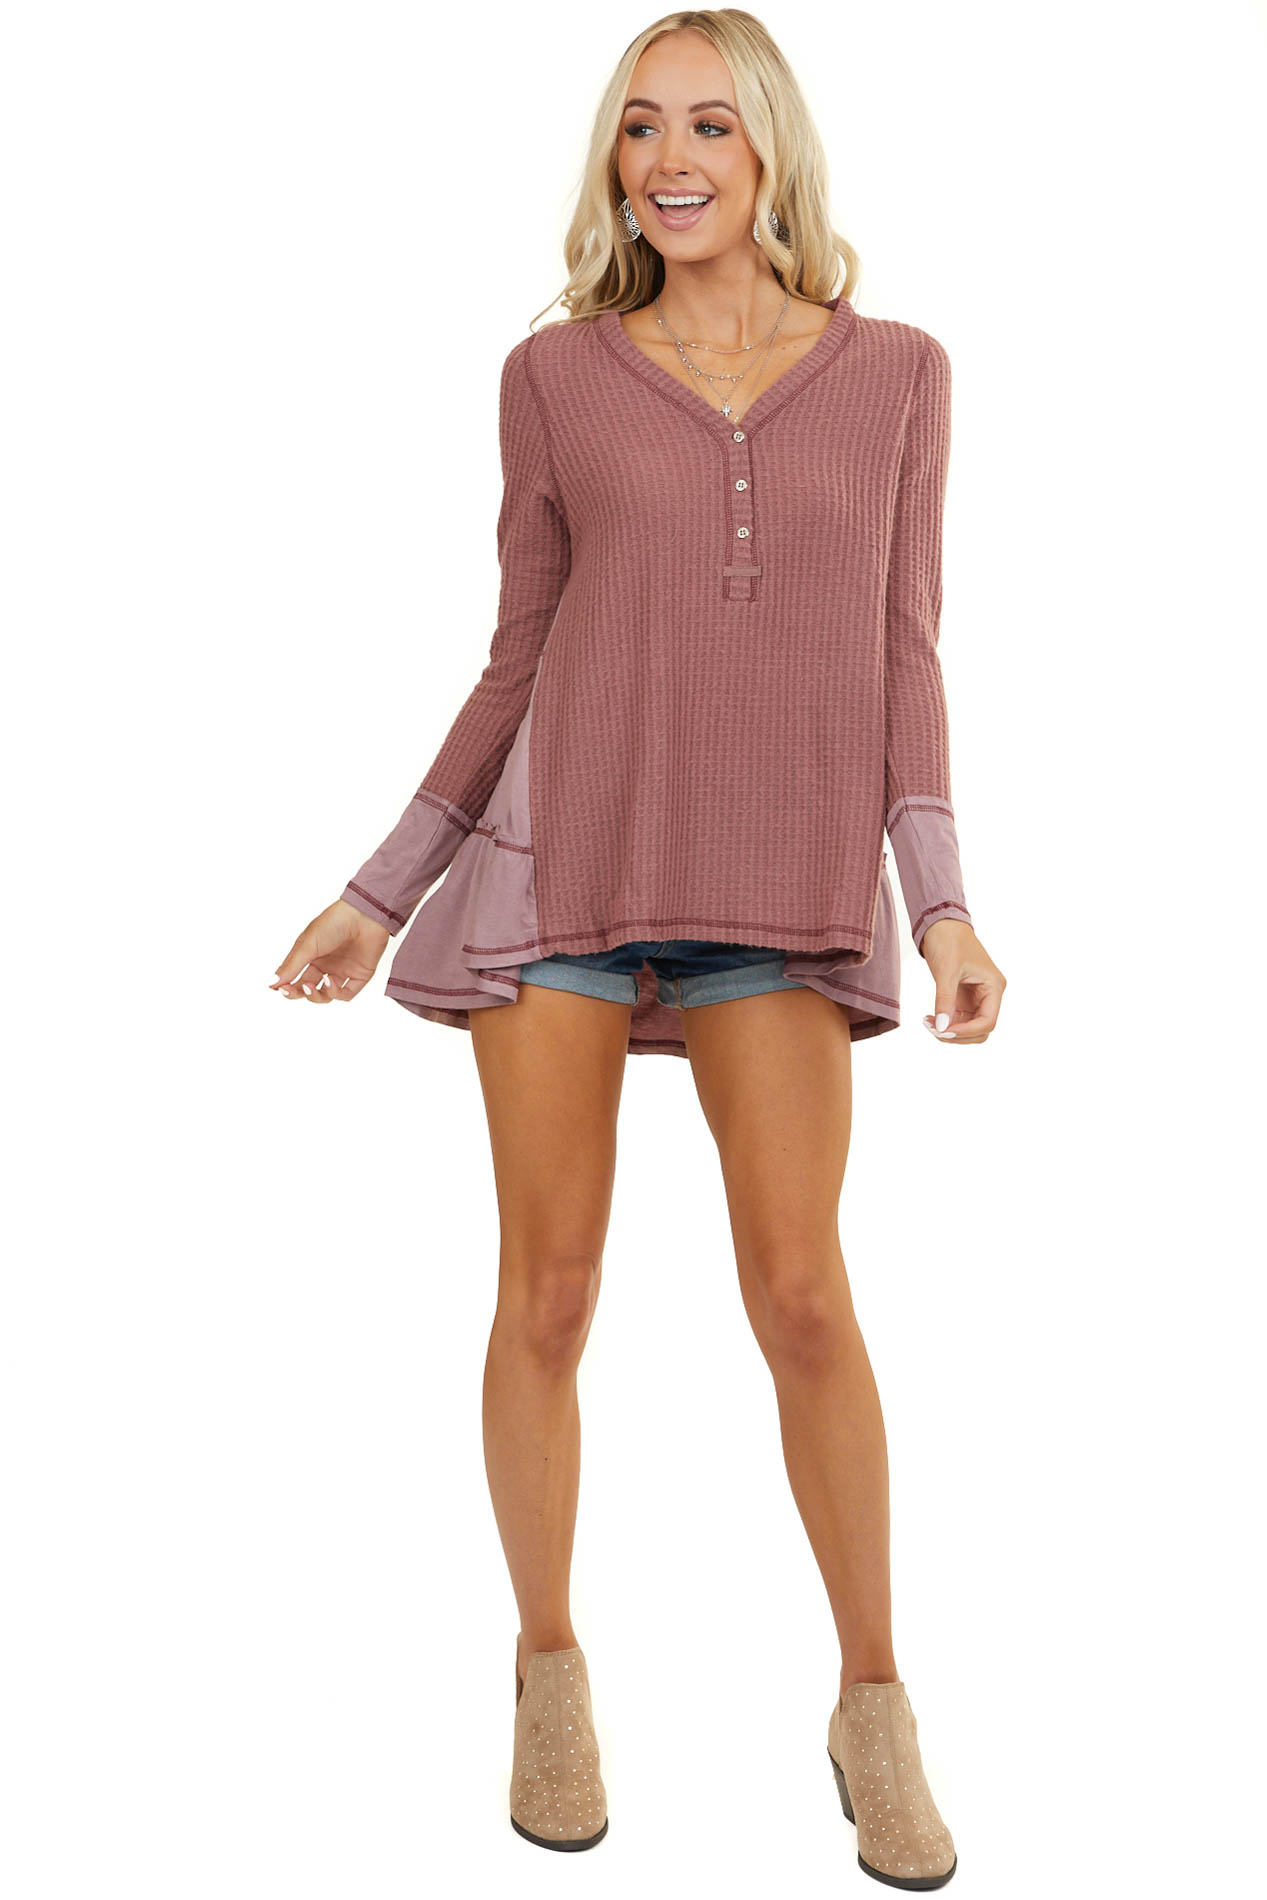 Mauve Long Sleeve Knit Top with Back Layered Contrast